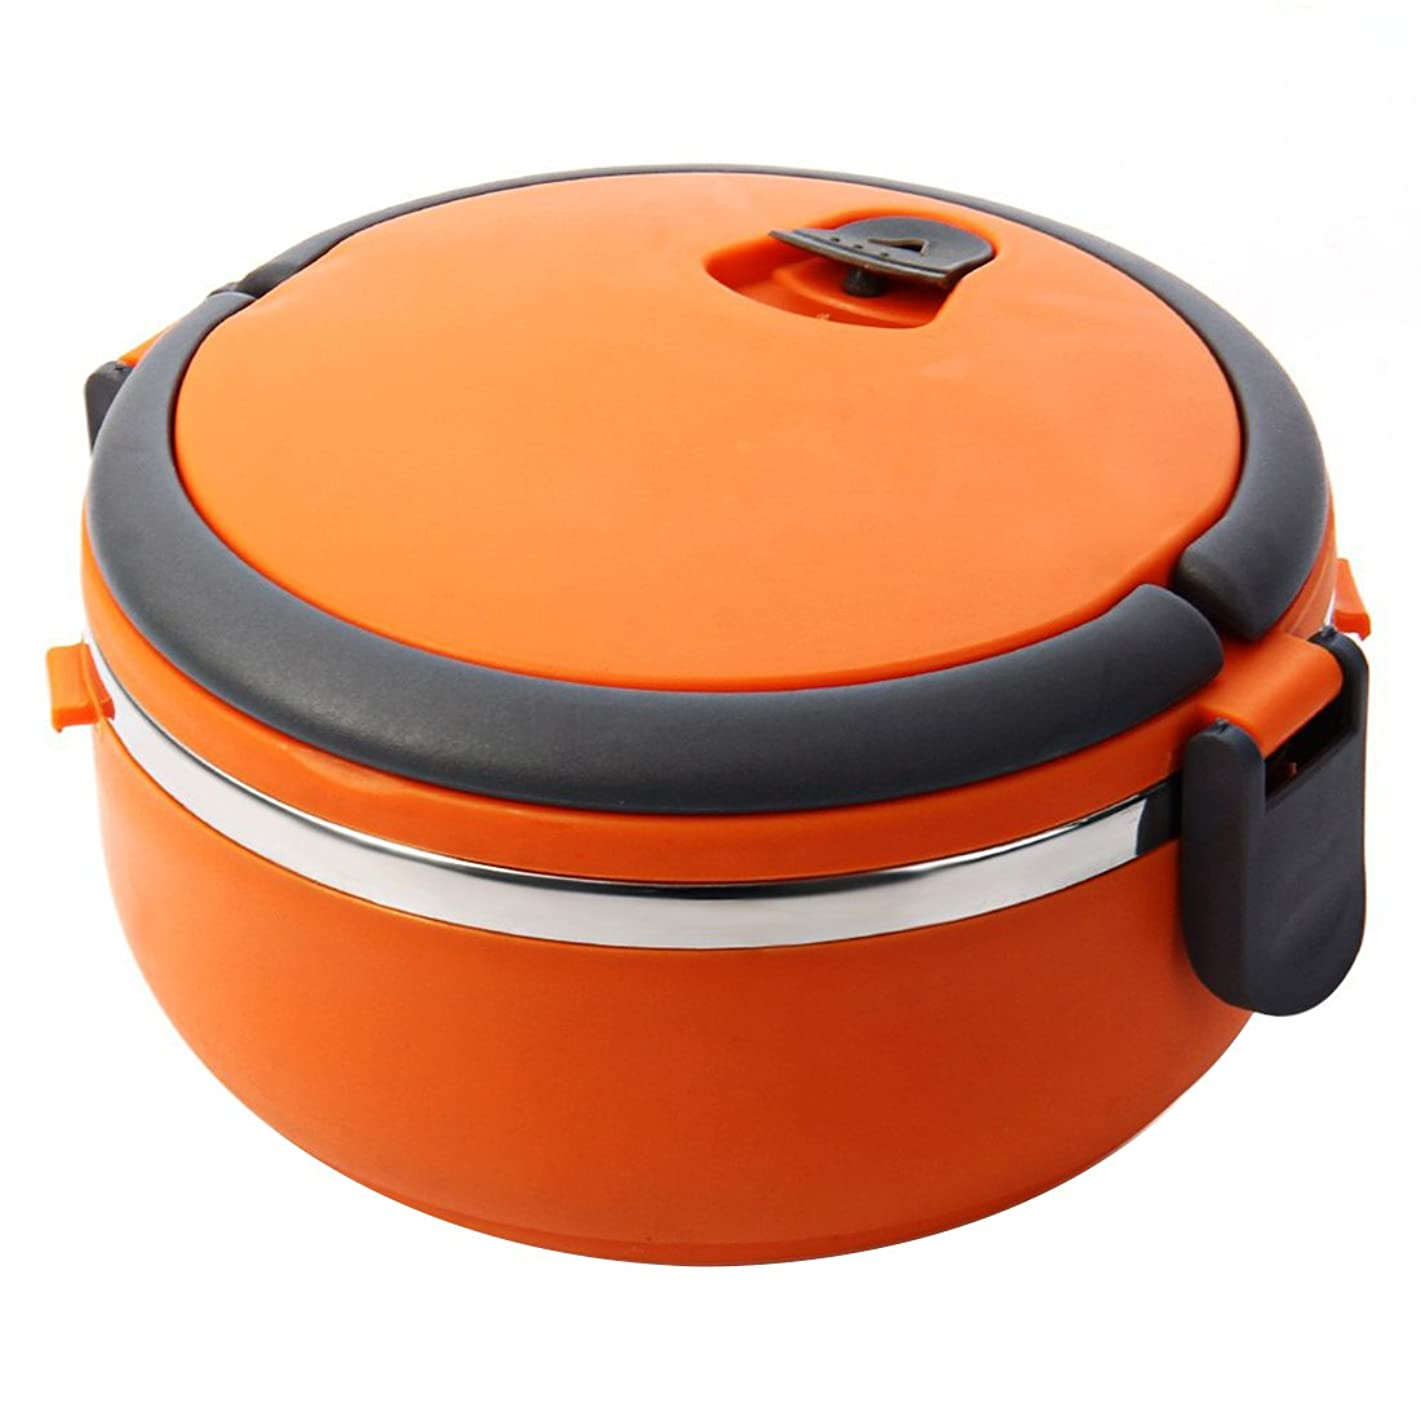 Td stores Lunch Box for Kids Stainless Steel Portable Lunchbox Orange